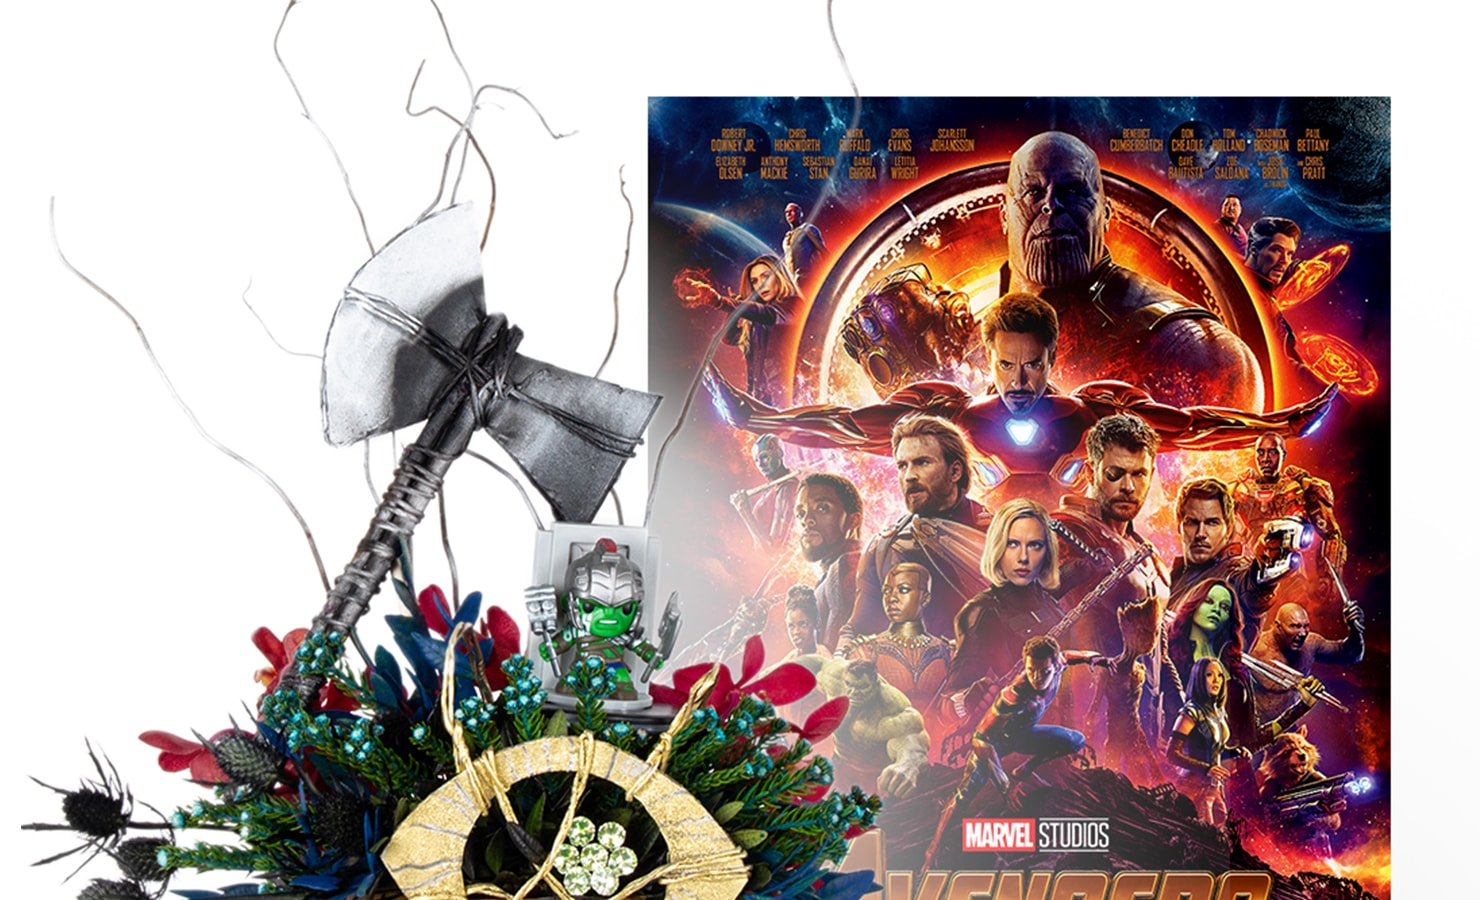 04-bloomthis-gsc-avengers-infinity-war-poster